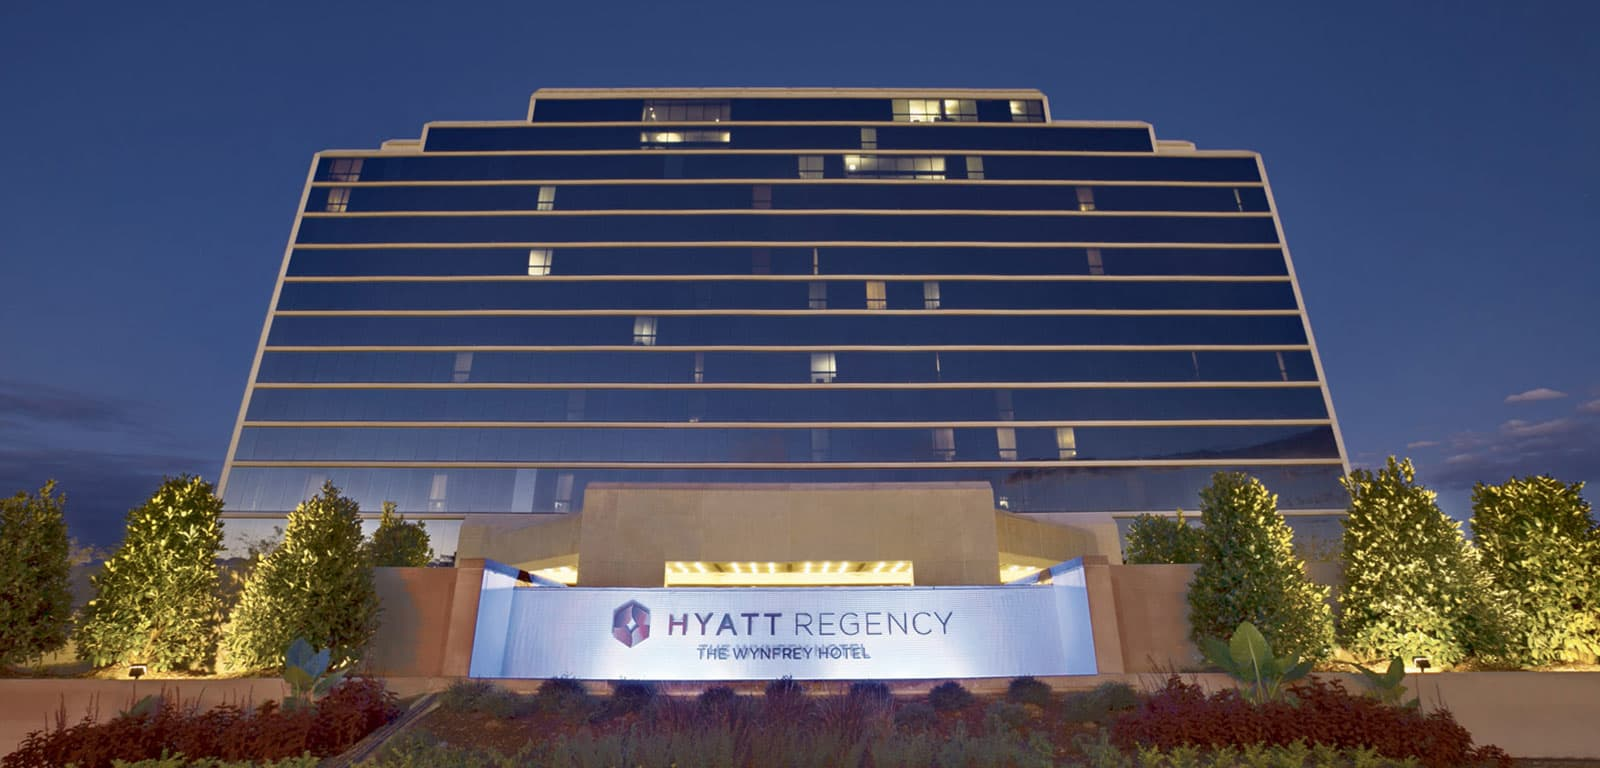 Exterior Shot of The Wynfrey Hotel - Hyatt Regency in Birmingham, Atlanta